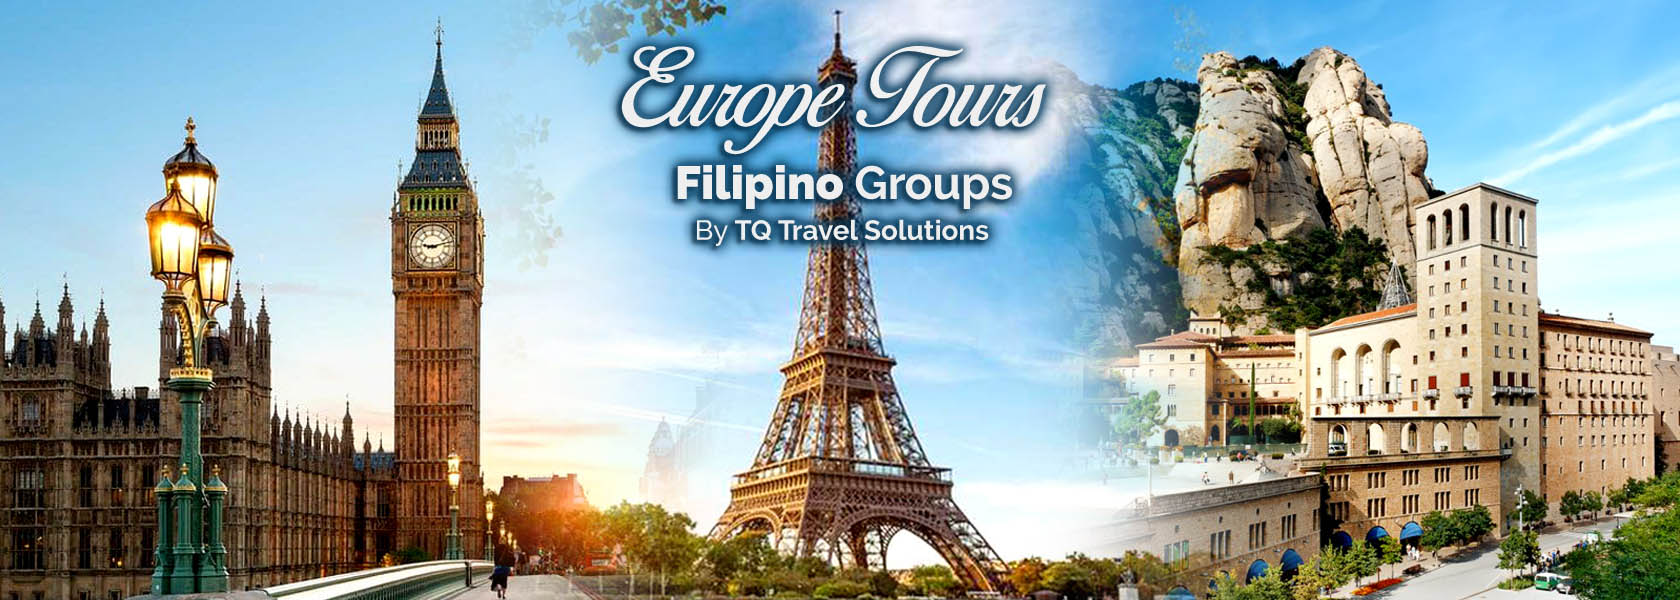 Tq Travel Solutions Europe Tour Packages